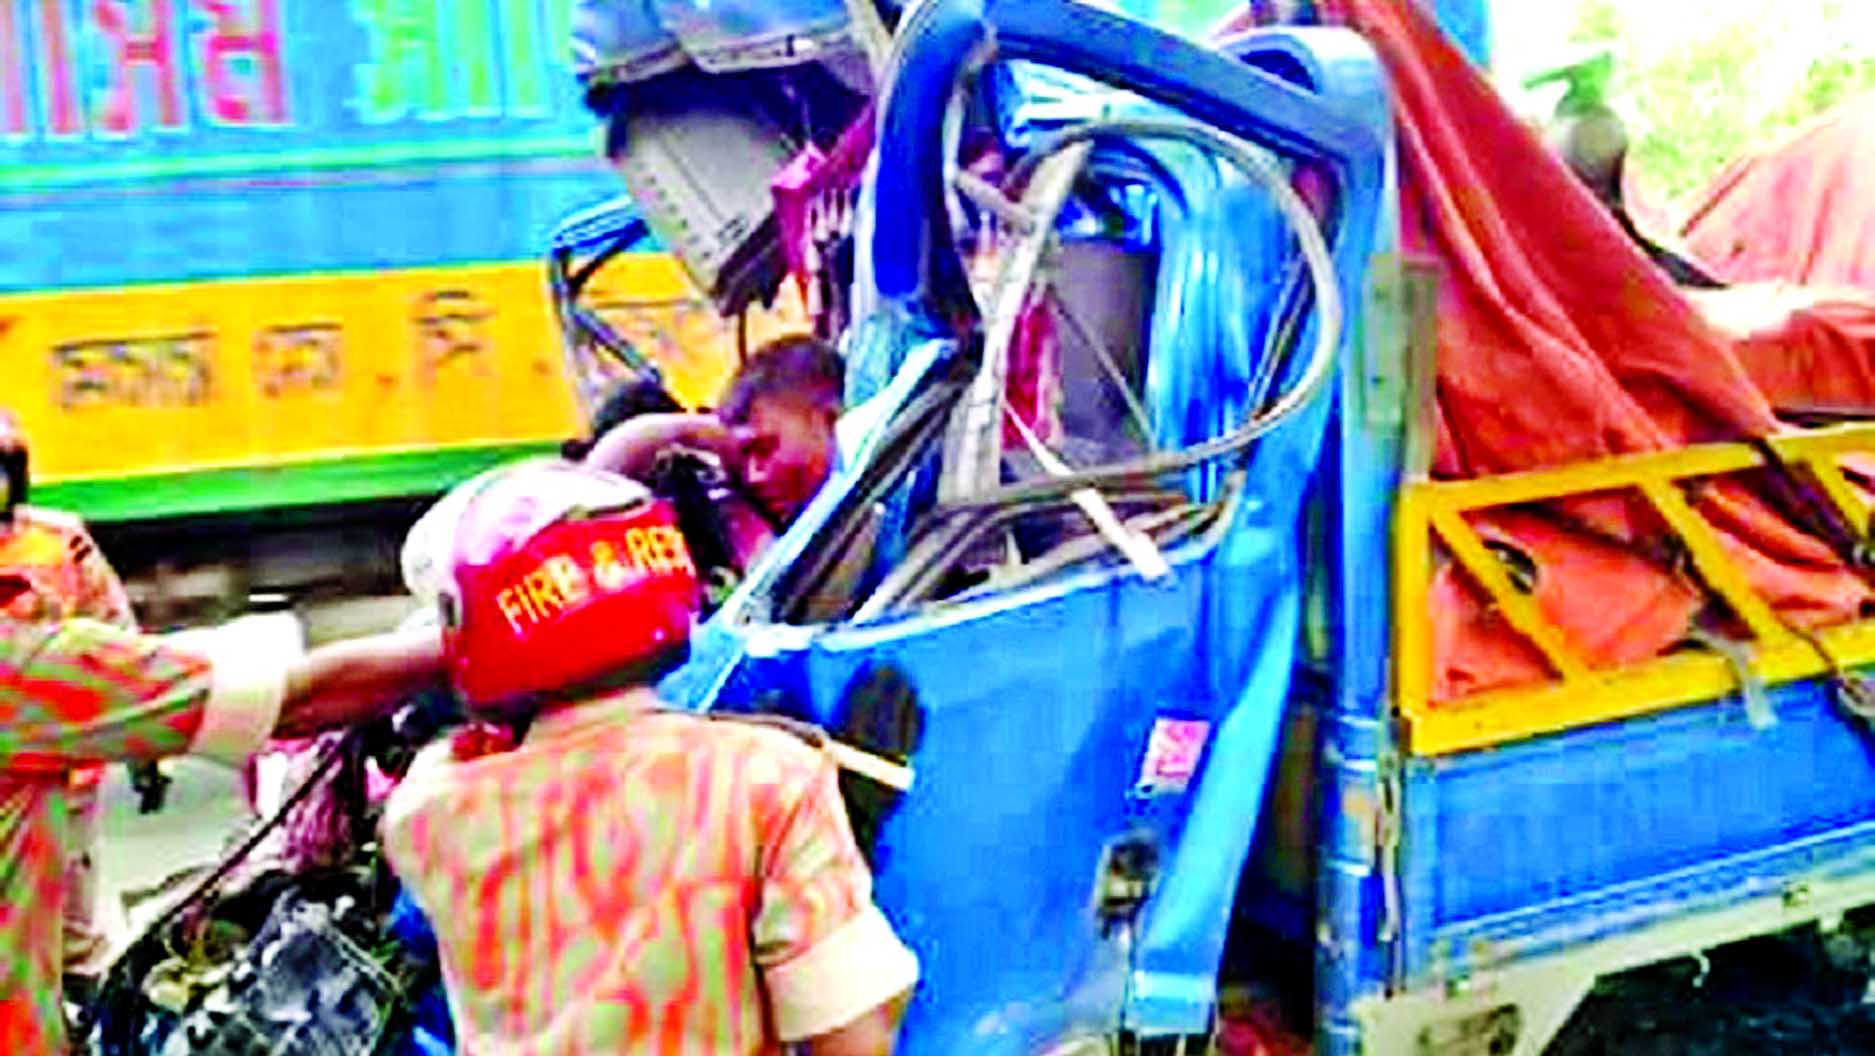 Two persons were killed including driver on the spot when a goods laden pickup van hits a truck at Gul Ahmed Jute Mills area in Sitakunda on Friday.